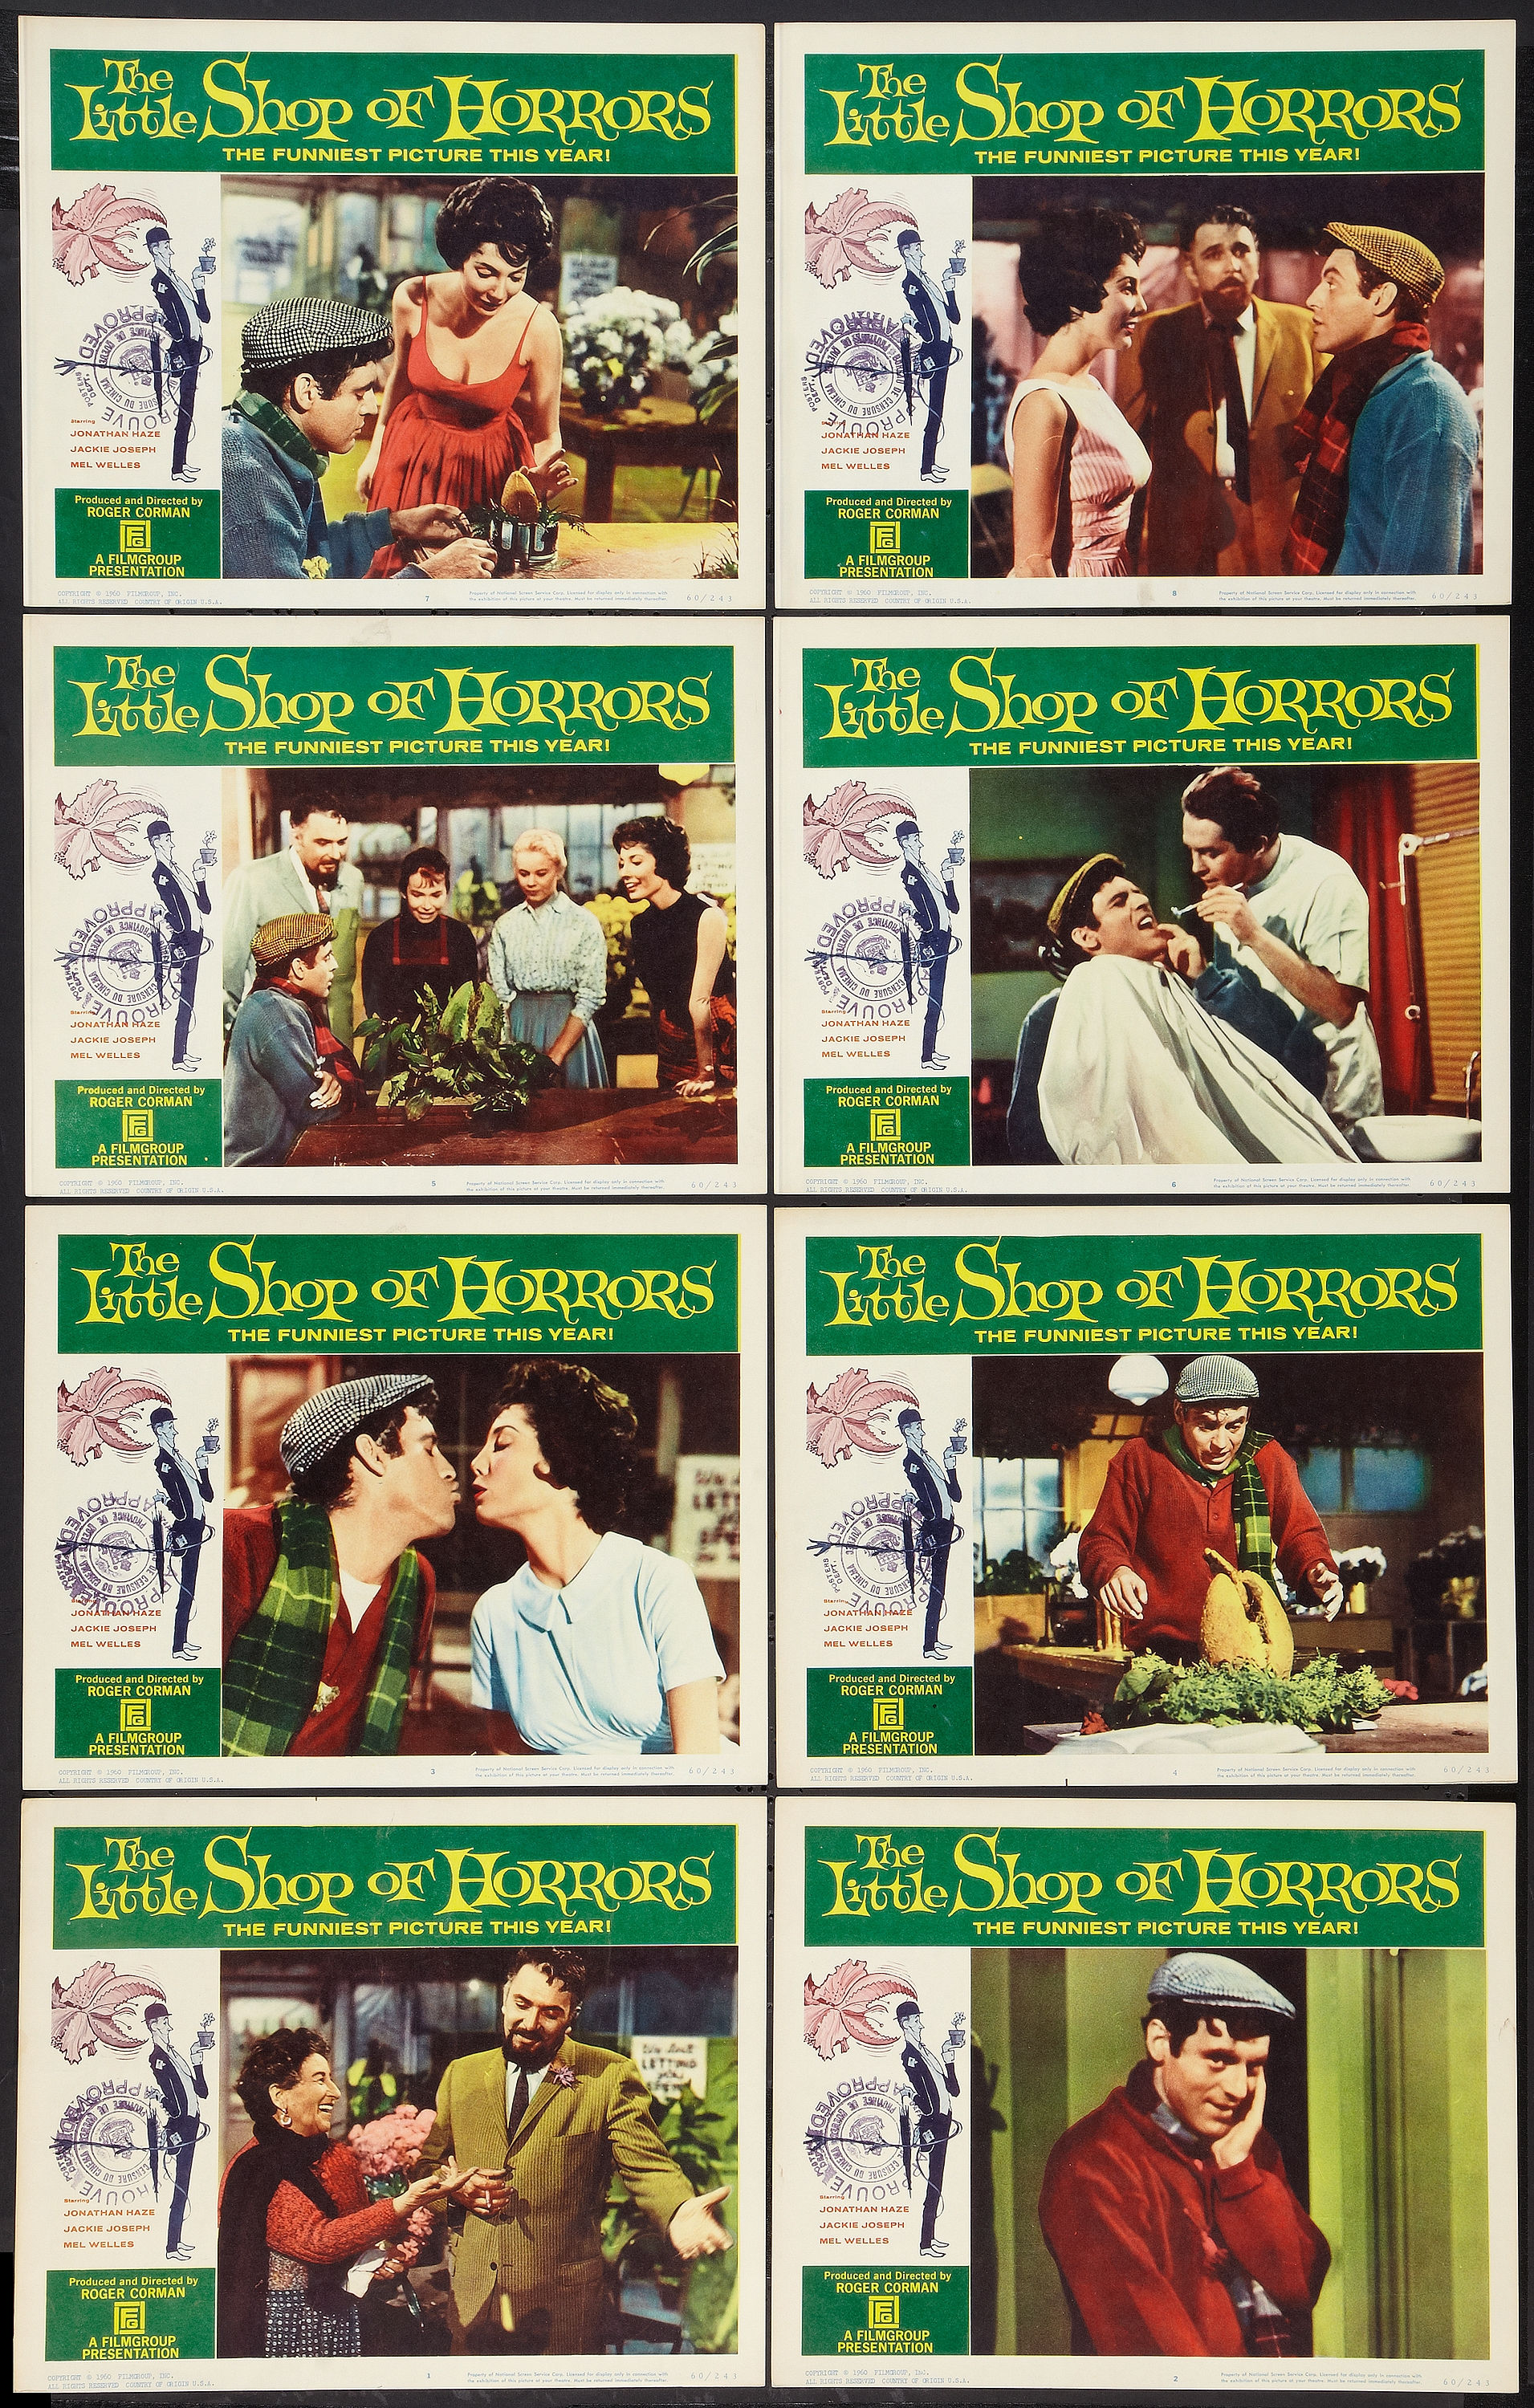 Little Shop of Horrors (1960) lobby cards